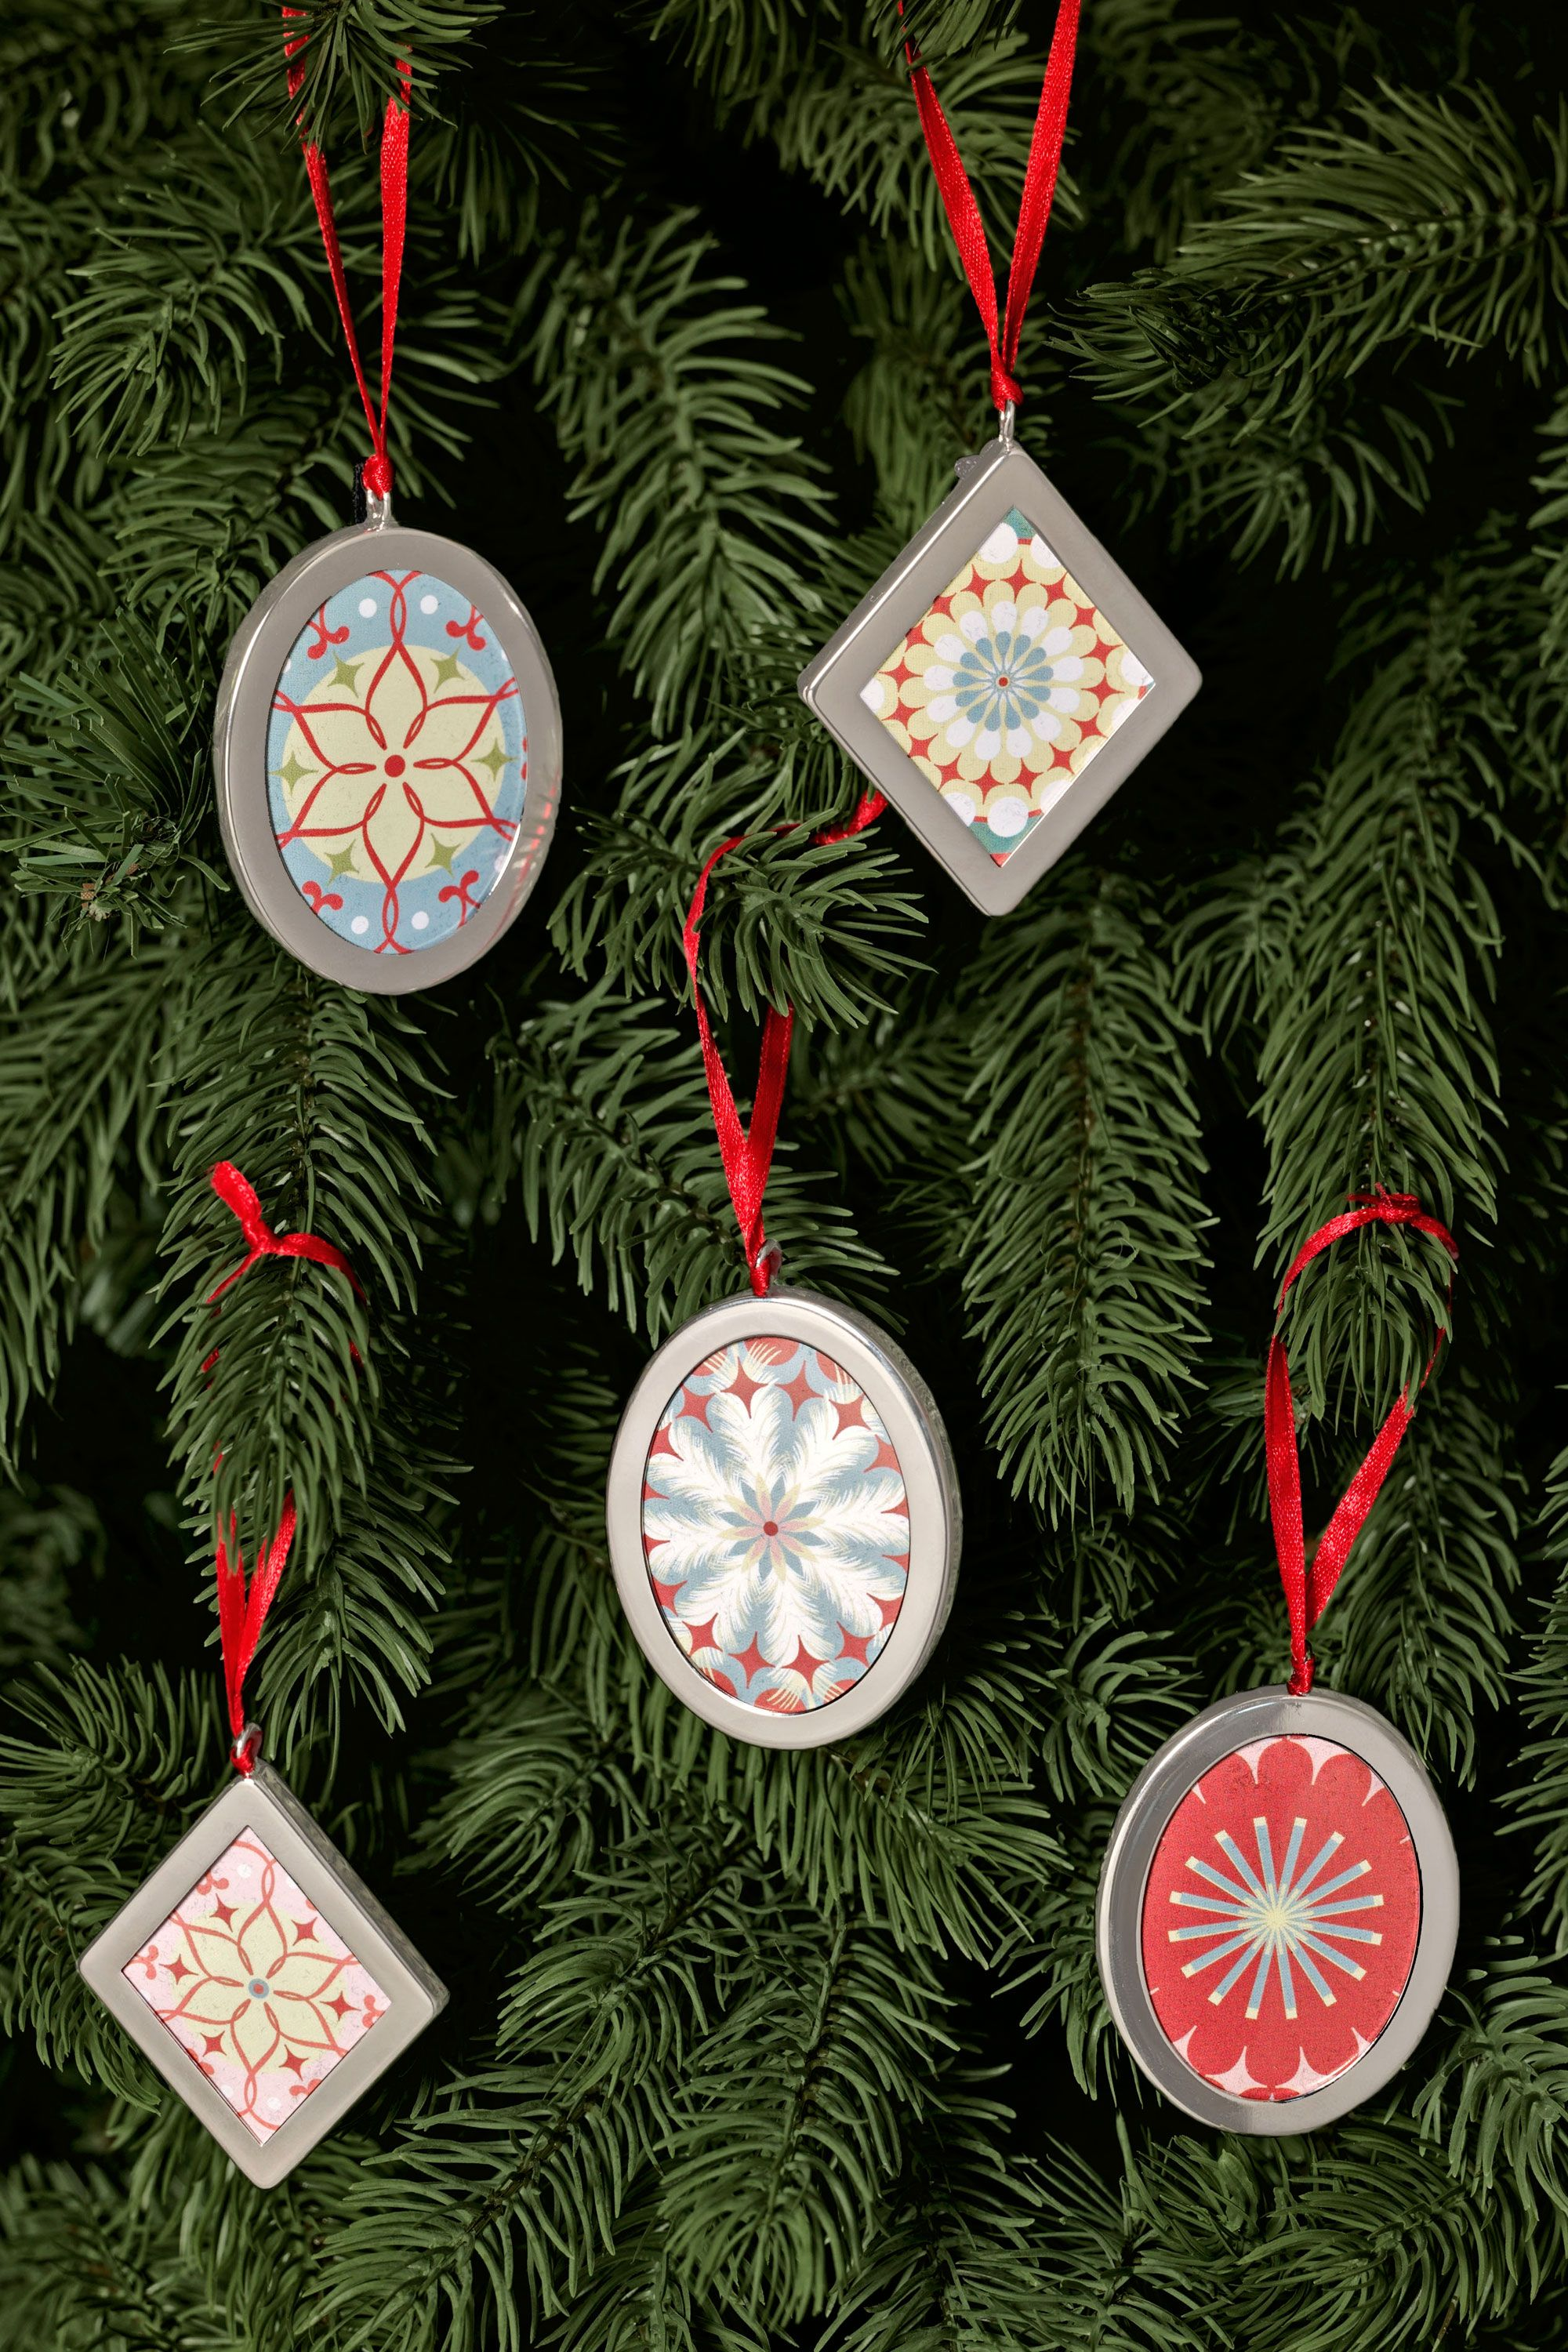 60 Homemade Christmas Ornaments - DIY Crafts with Christmas Tree ...